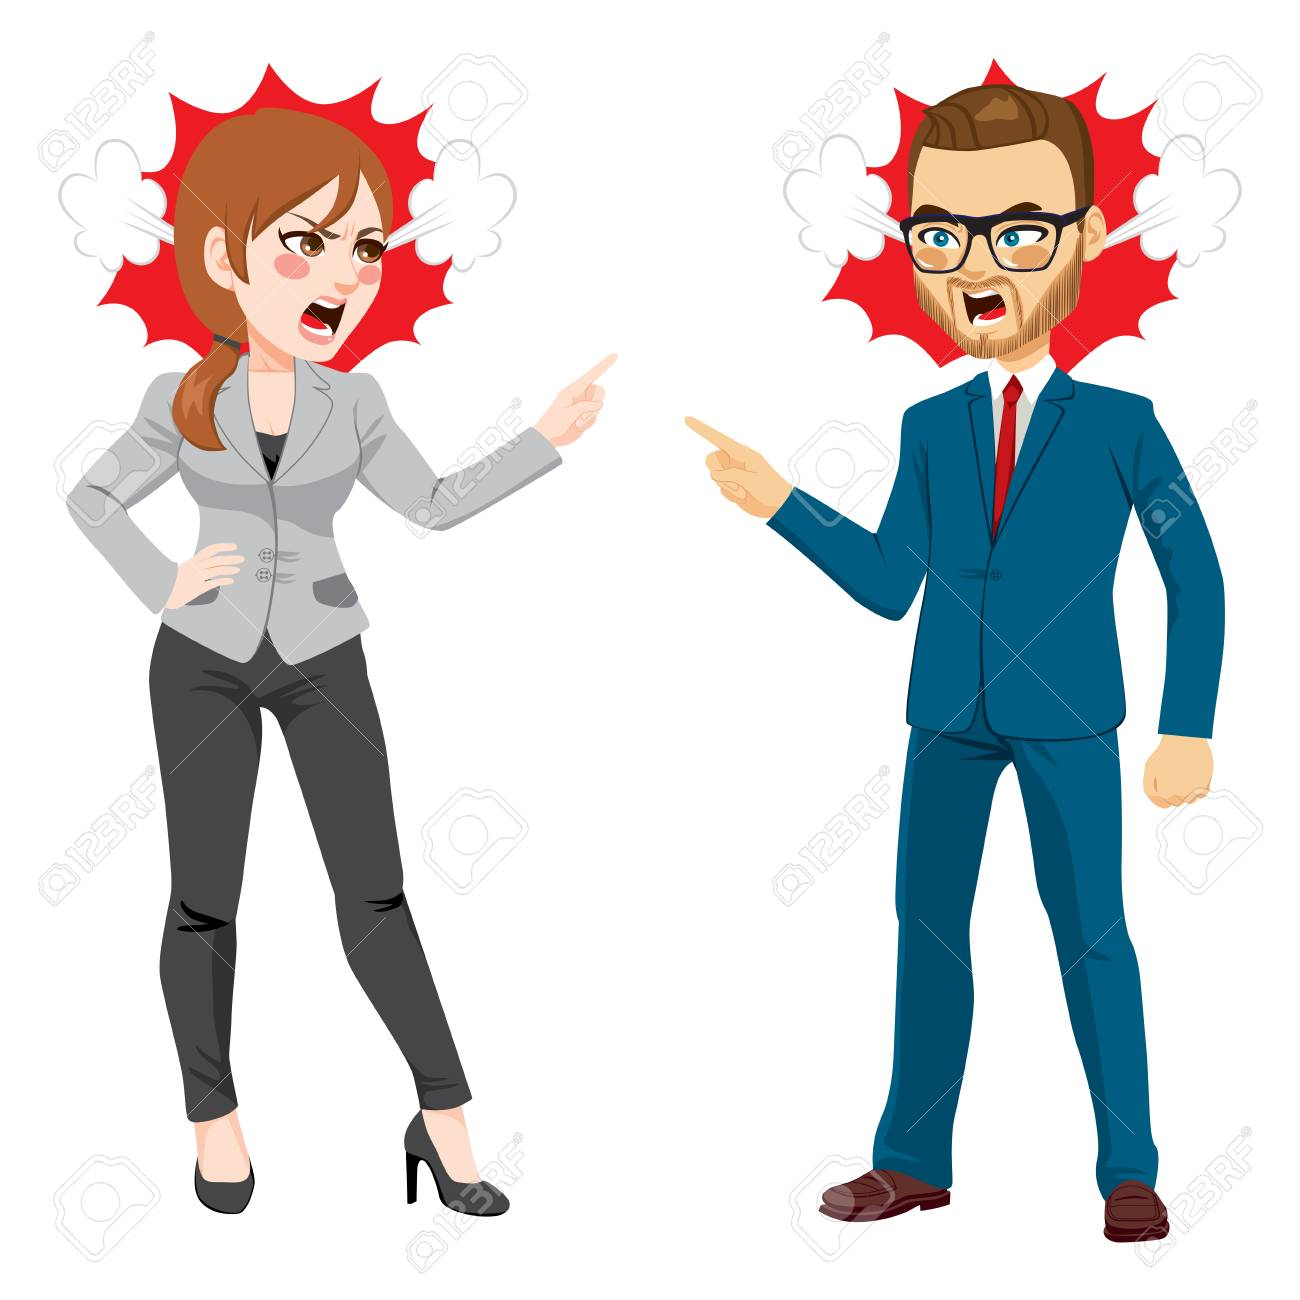 Workplace Conflict Cliparts Free Download Clip Art.